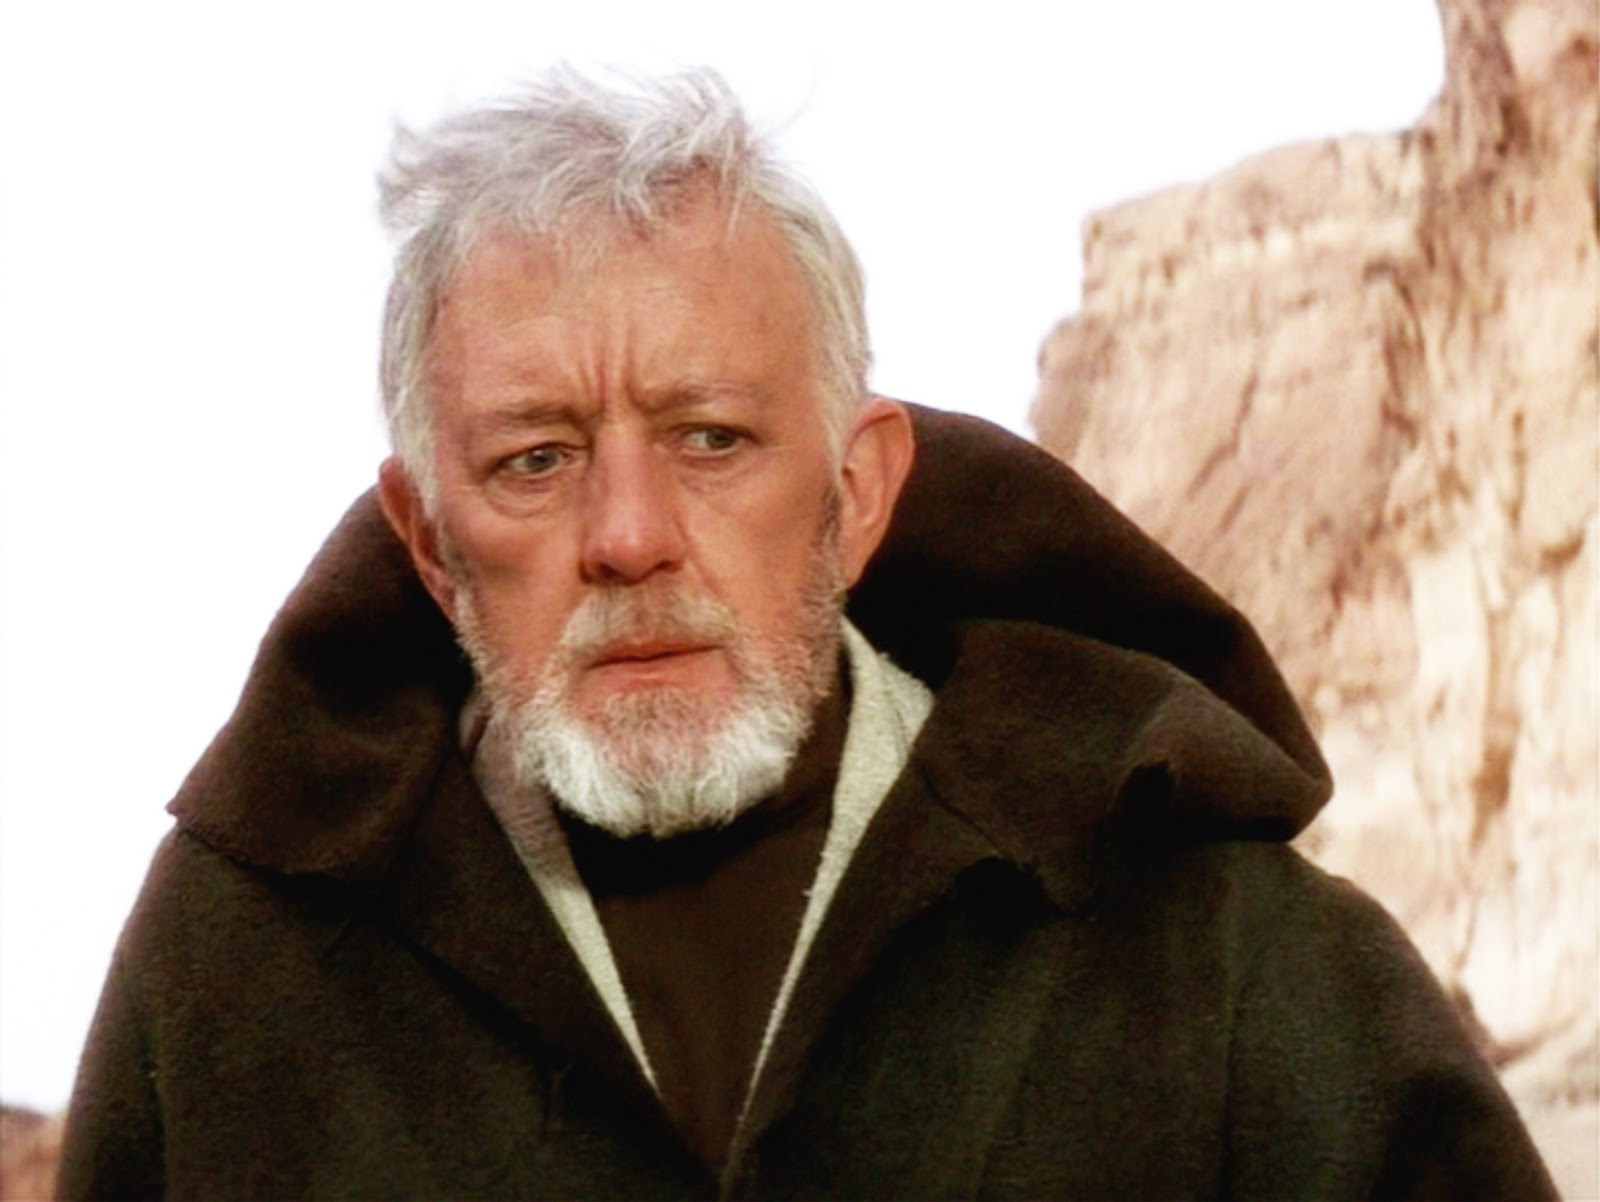 Alec Guinness as Obi Wan Kenobi on A New Hope.